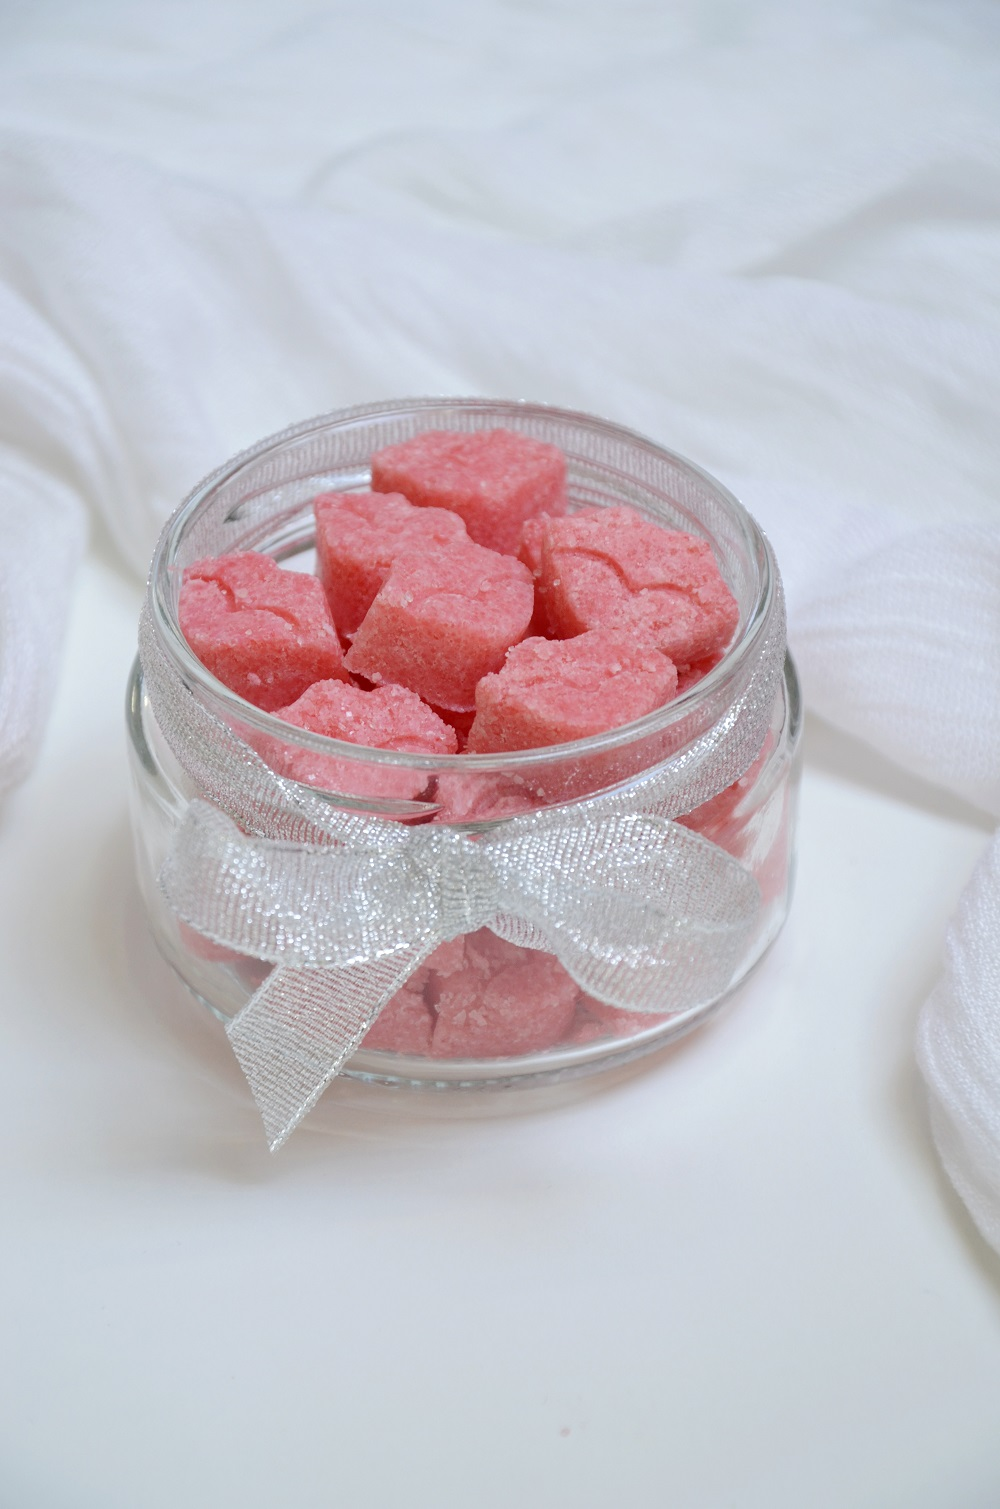 diy-strawberry-sugar-scrub-kisses-a-homemade-valentines-day-gift-365-beauty-tips